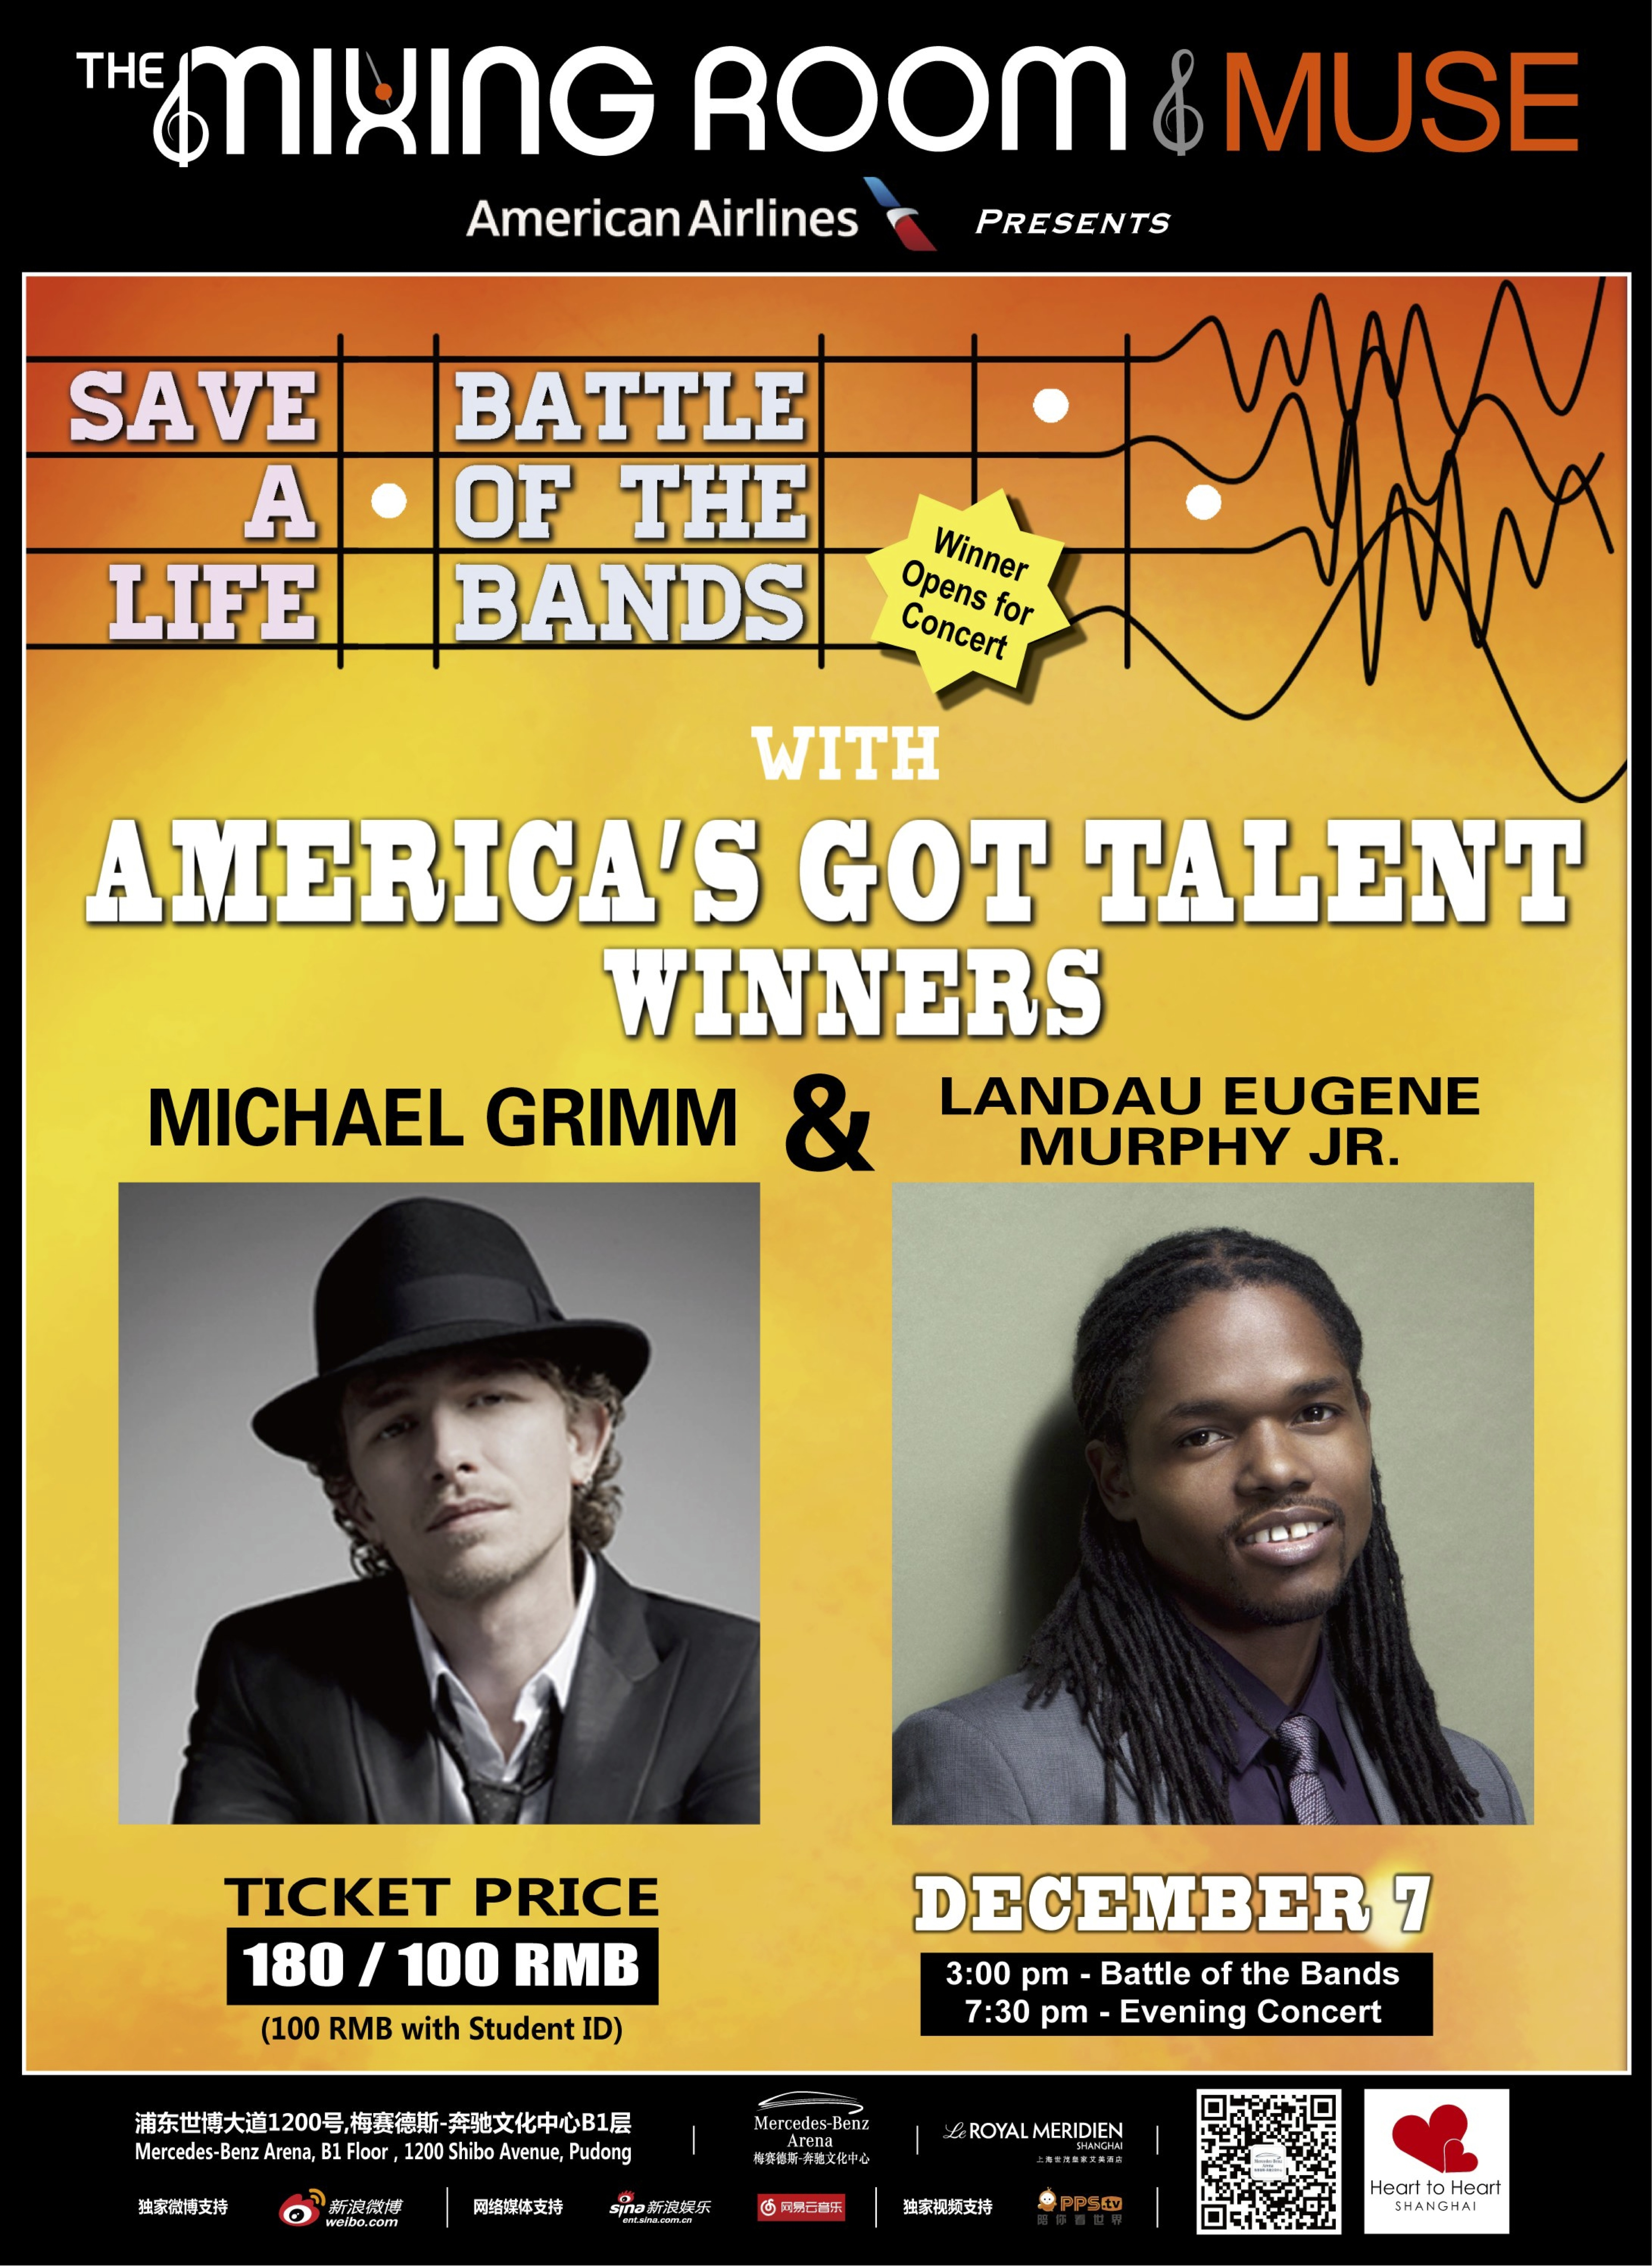 fellow America's Got Talent winner – Michael Grimm!